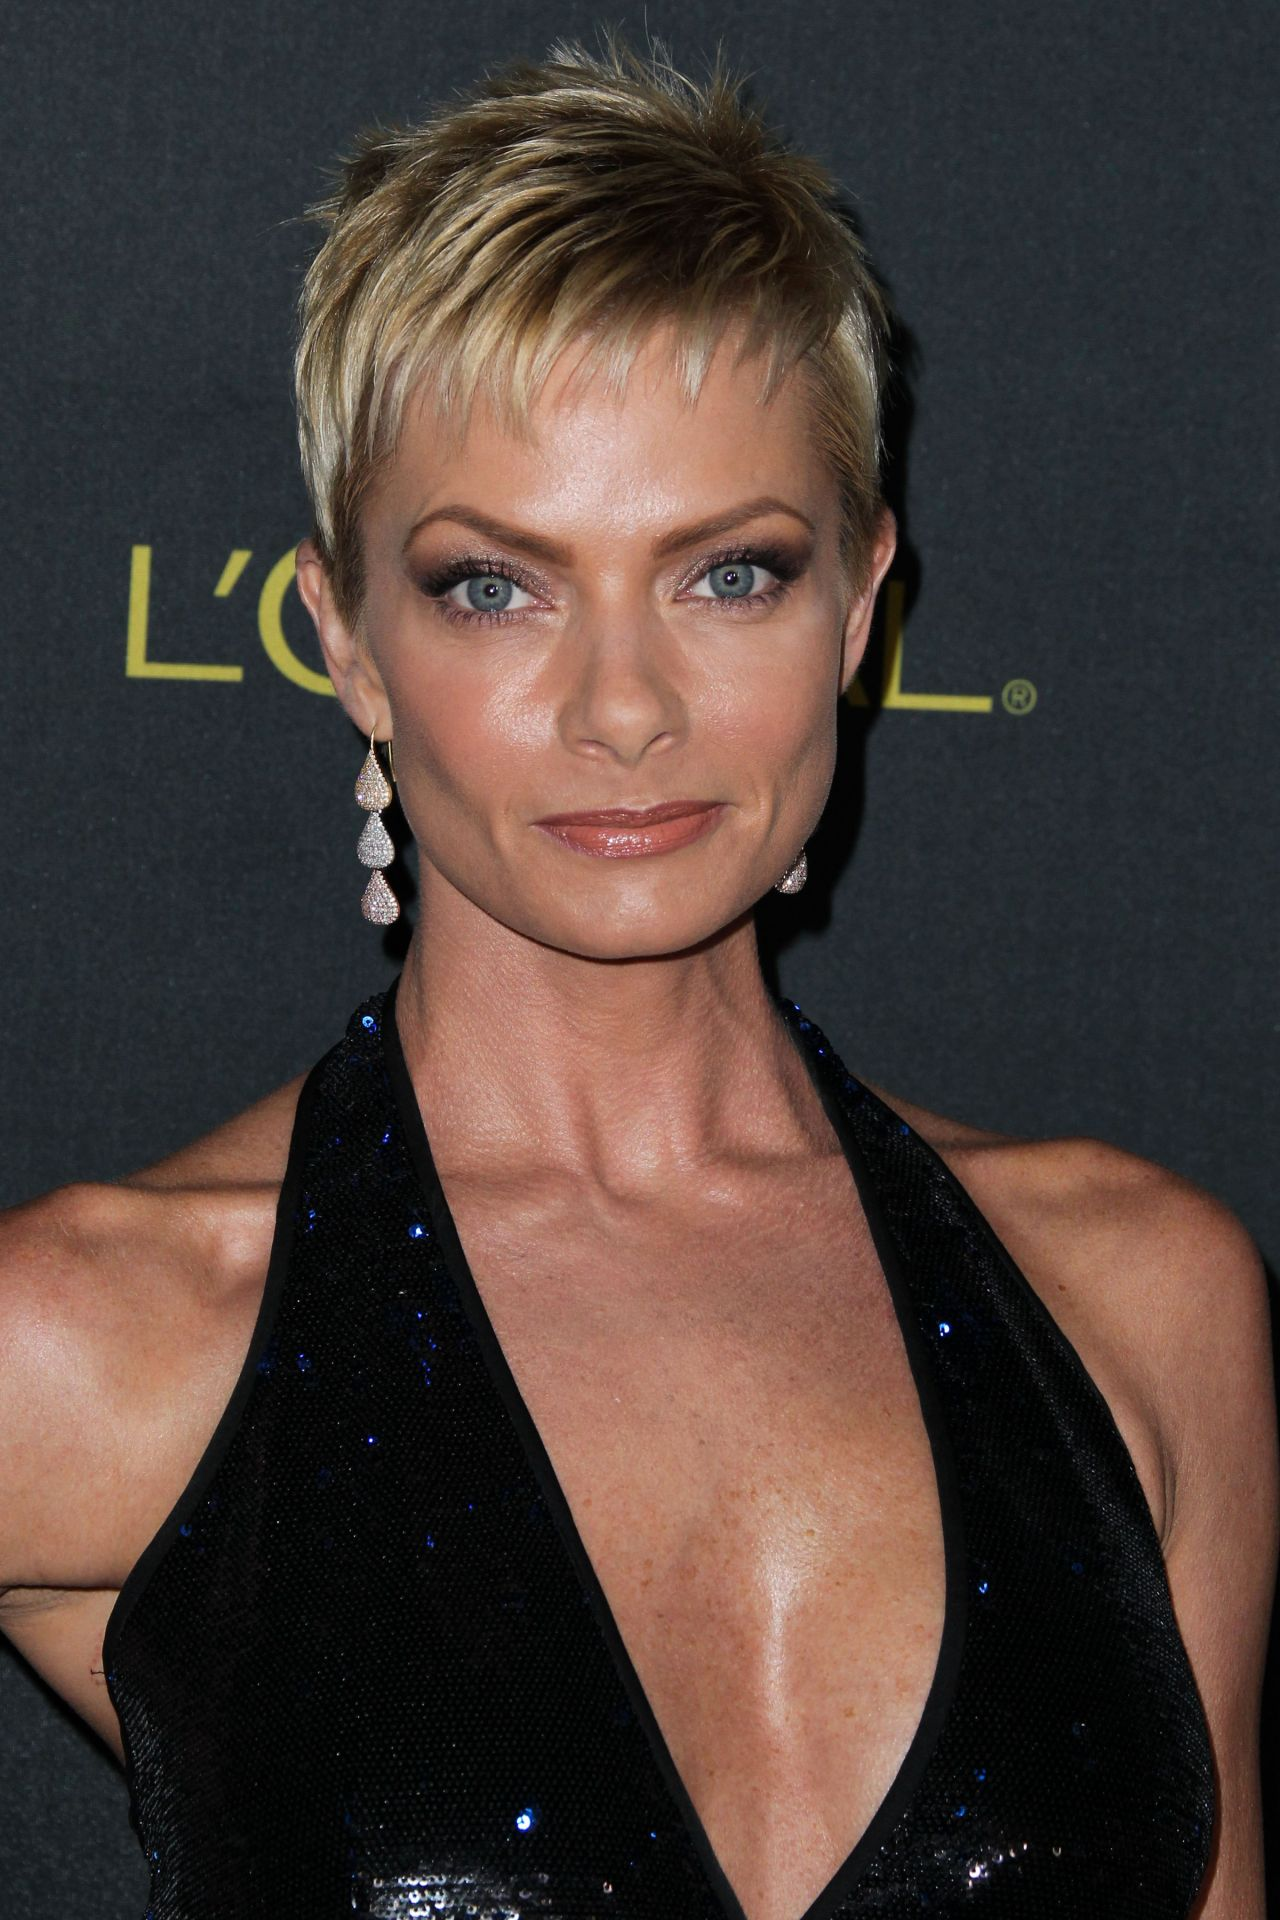 jaime pressly mikajaime pressly margot robbie, jaime pressly net worth, jaime pressly mika, jaime pressly imdb, jaime pressly twitter, jaime pressly filme, jaime pressly i love you man, jaime pressly fan, jaime pressly instagram, jaime pressly vs margot robbie, jaime pressly aerosmith, jaime pressly, jaime pressly wiki, jaime pressly movies, jaime pressly 2015